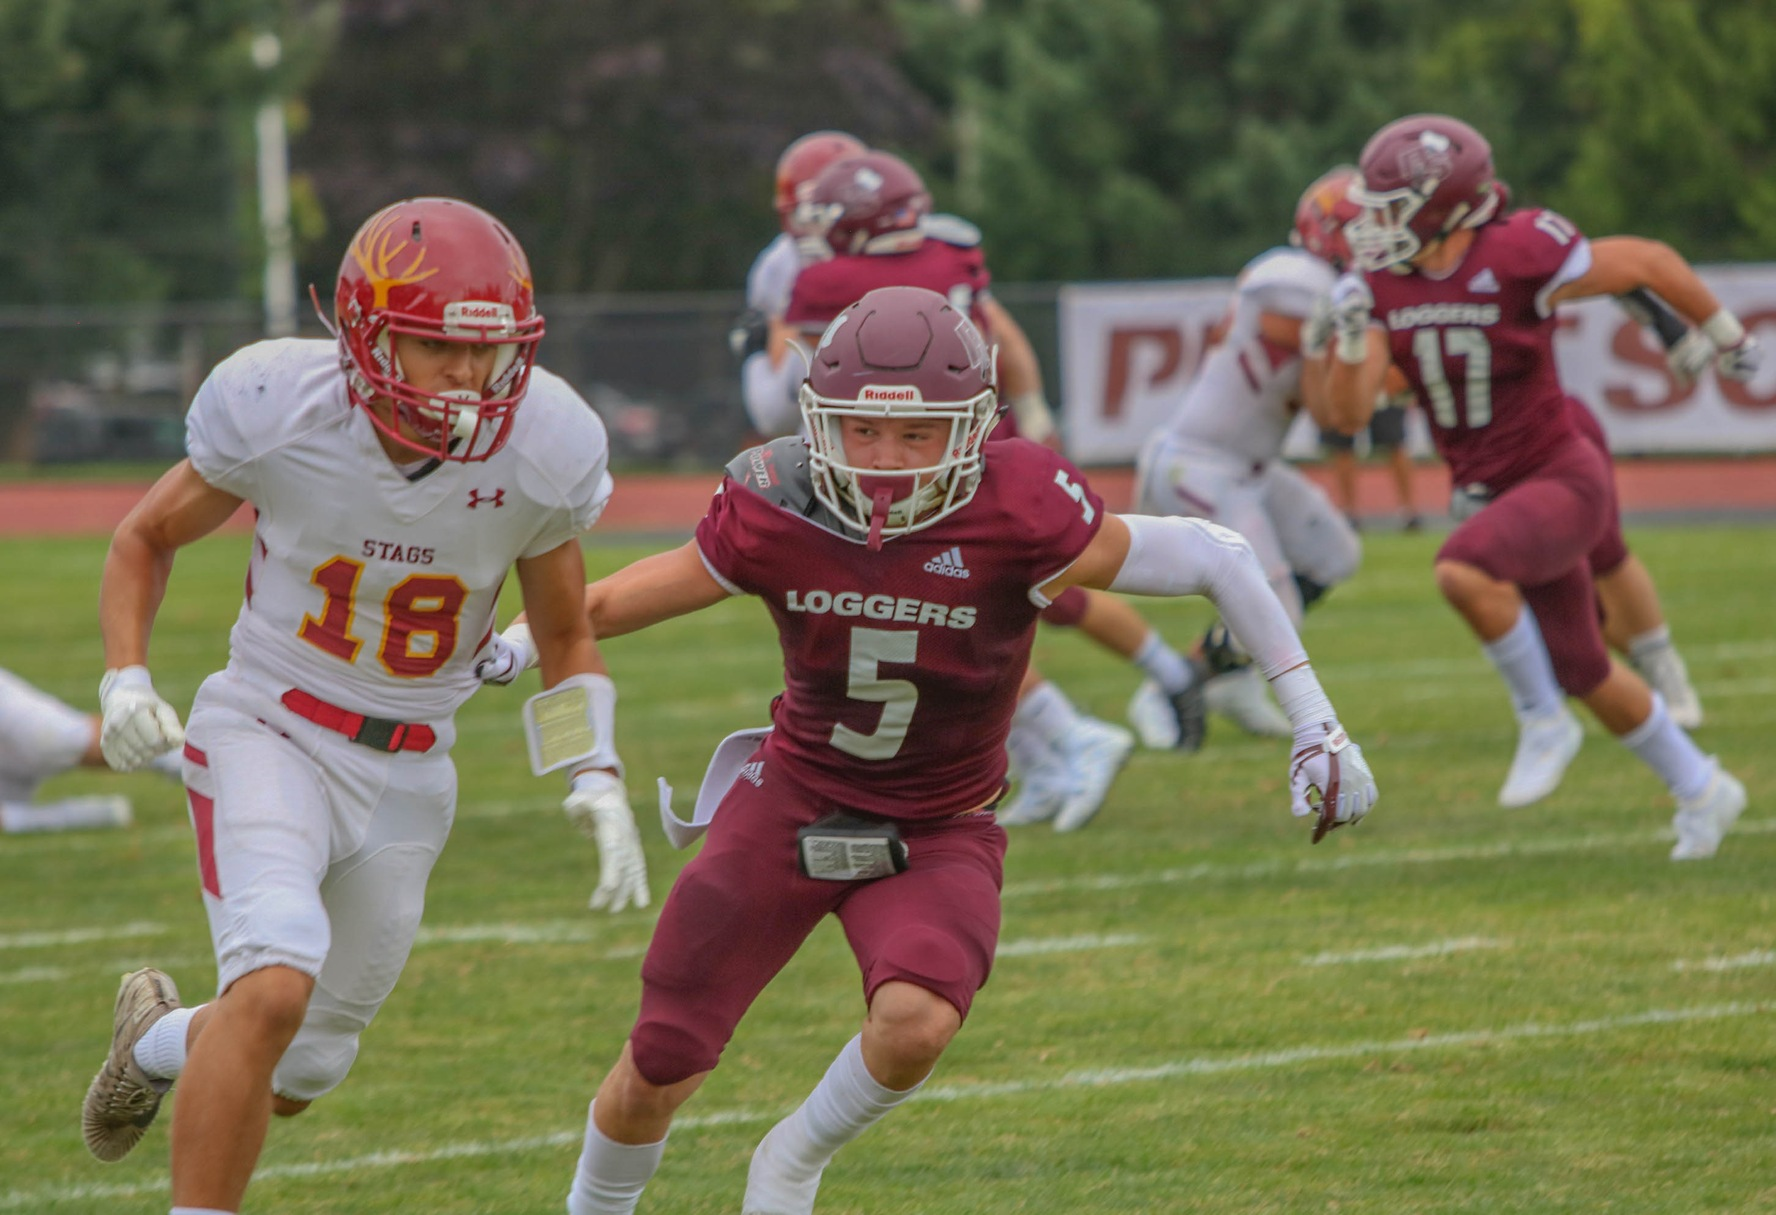 Puget Sound tops defending SCIAC Champs, 21-17